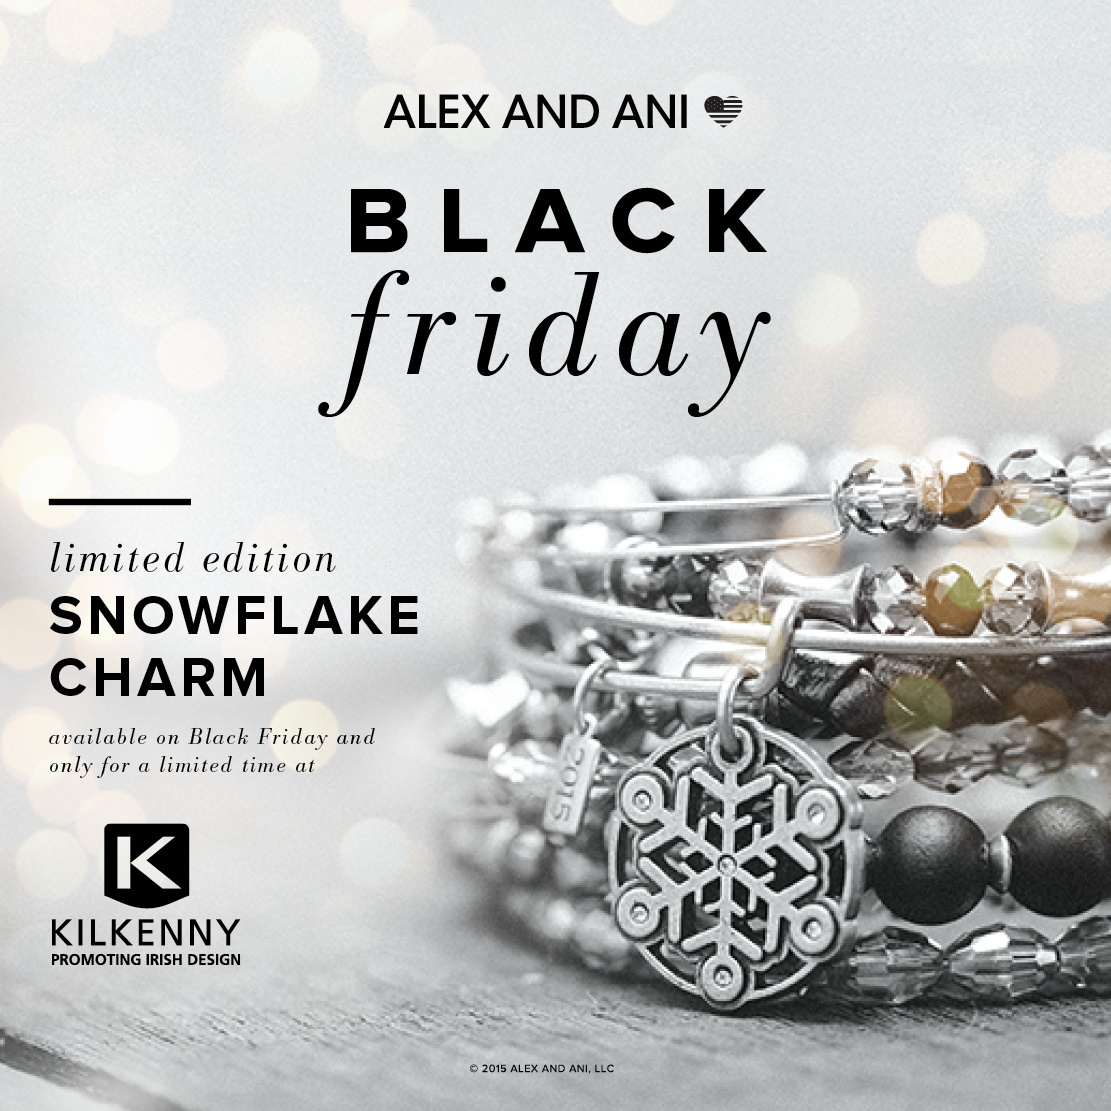 Kilkenny Alex and Ani Black Friday